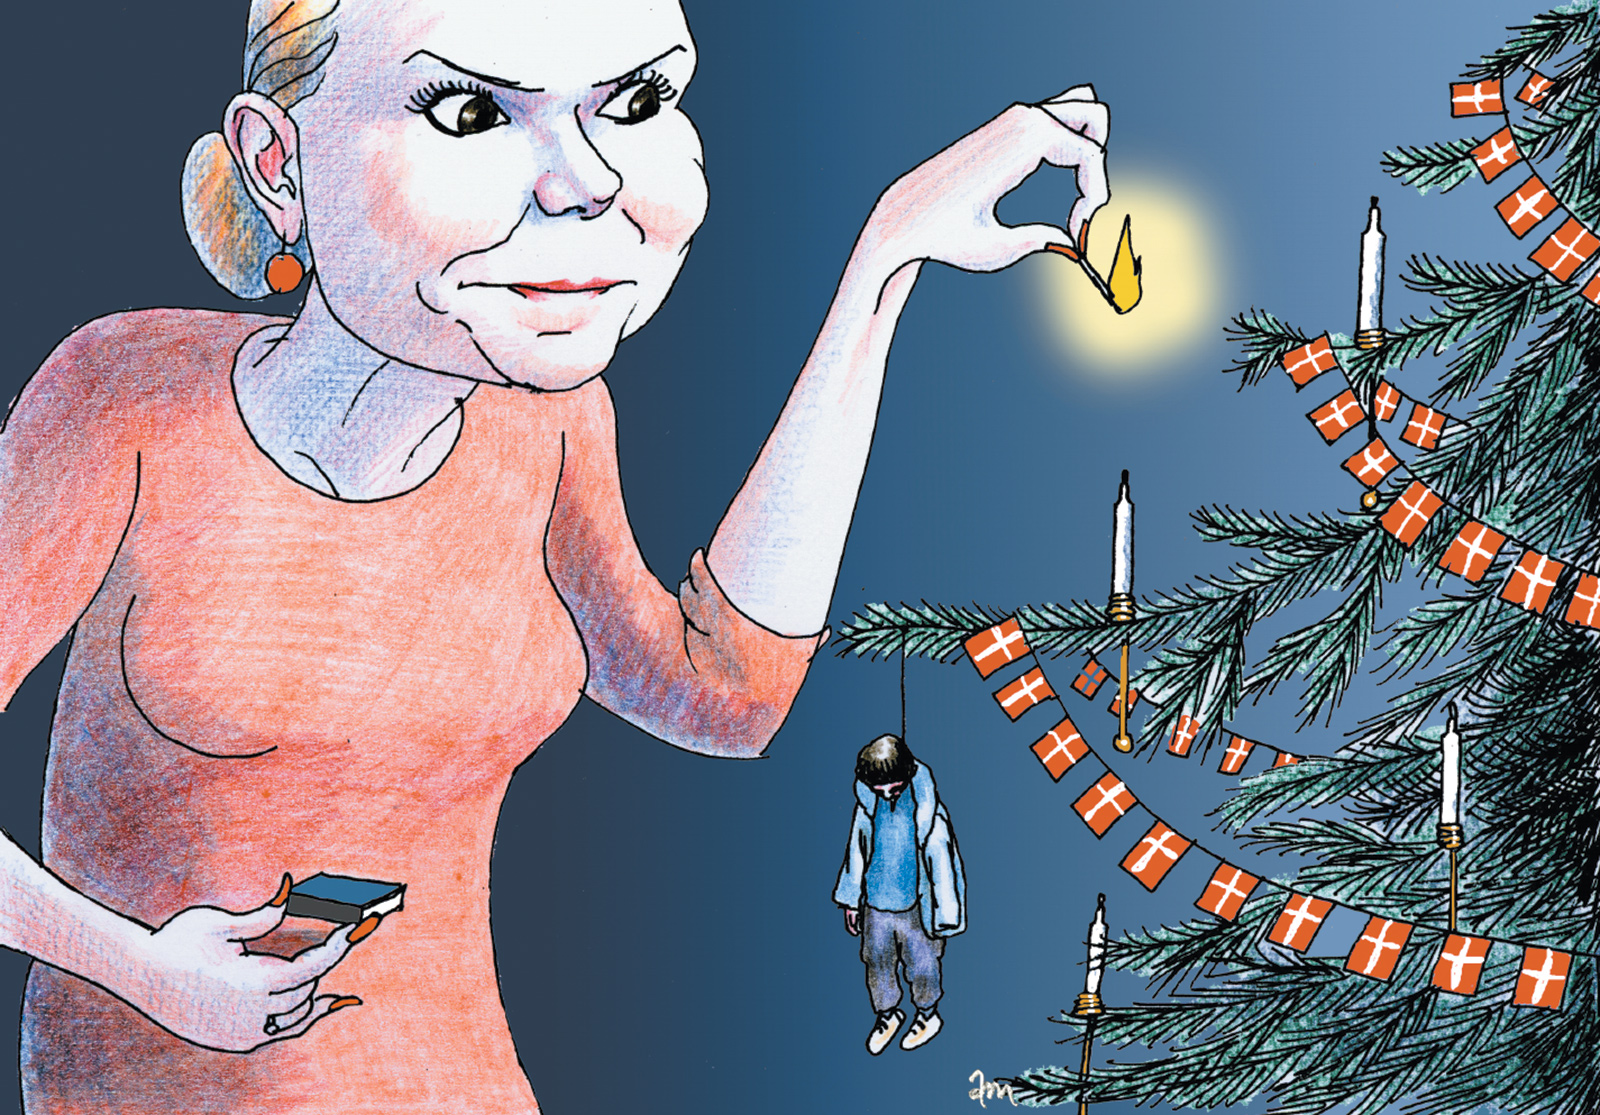 A cartoon published by the Danish newspaper Politiken showing Inger Støjberg, the country's integration minister, lighting candles on a Christmas tree that has a dead asylum-seeker as an ornament, December 2015